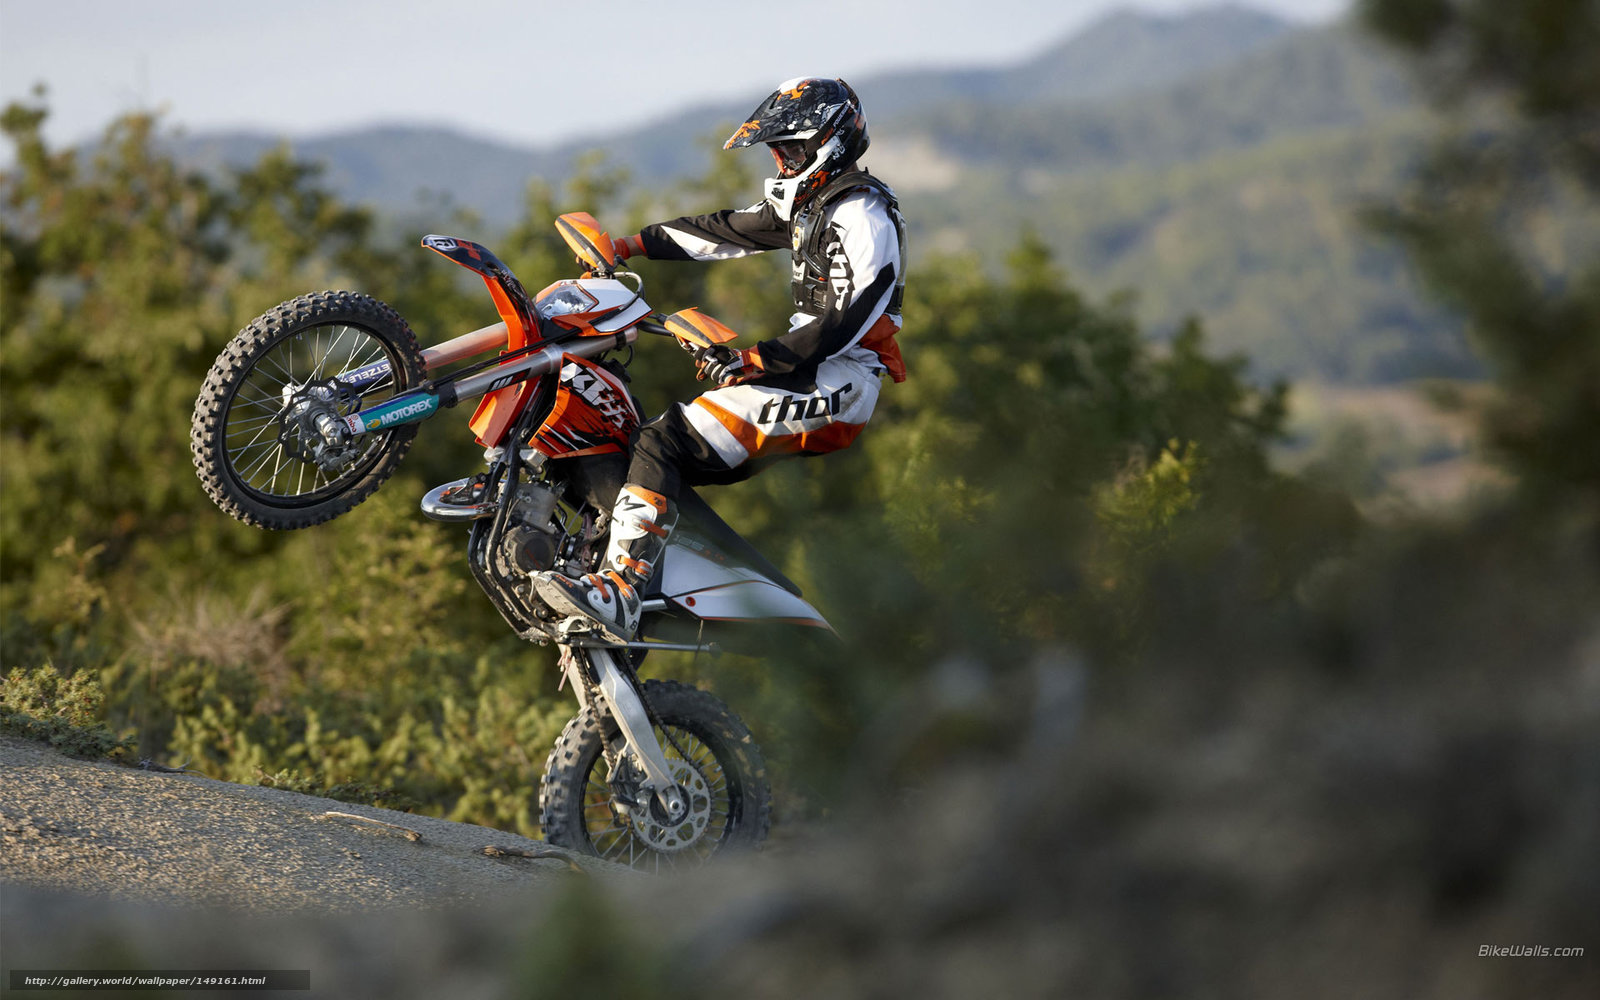 Download Wallpaper Ktm Offroad 125 Exc 125 Exc 2010 Free Desktop